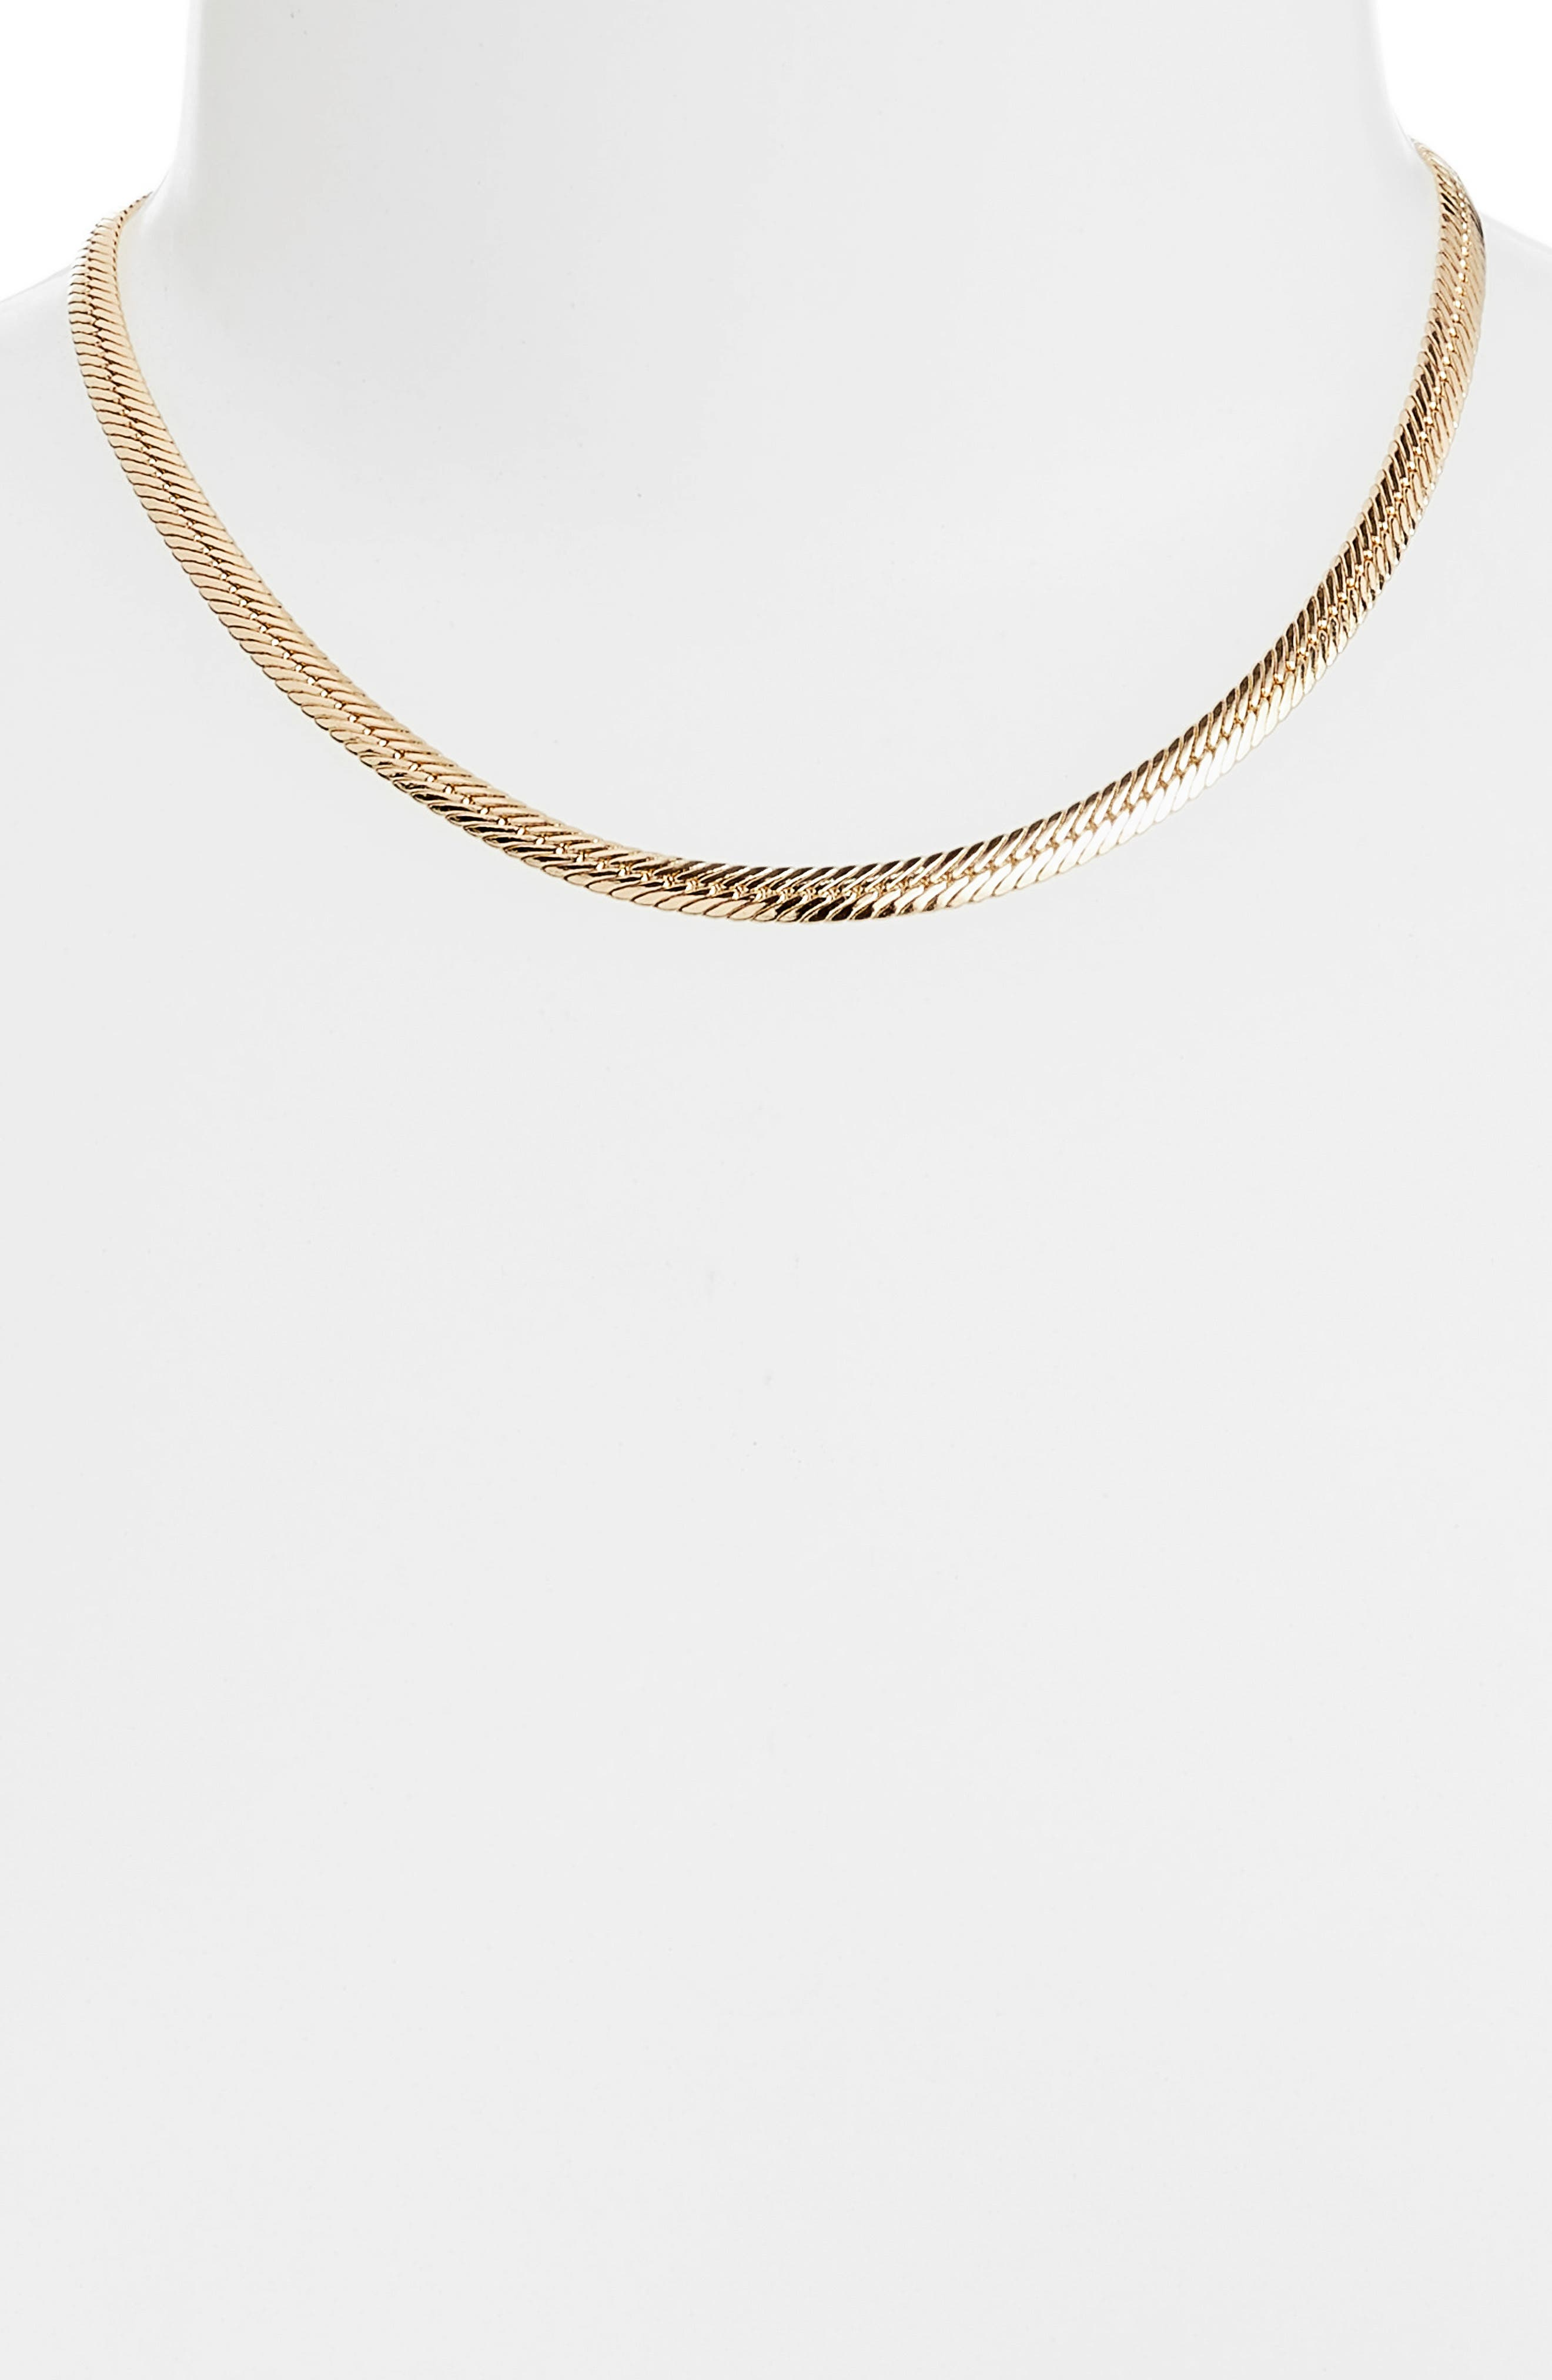 2-in-1 Snake Chain Lariat Necklace,                             Alternate thumbnail 2, color,                             GOLD